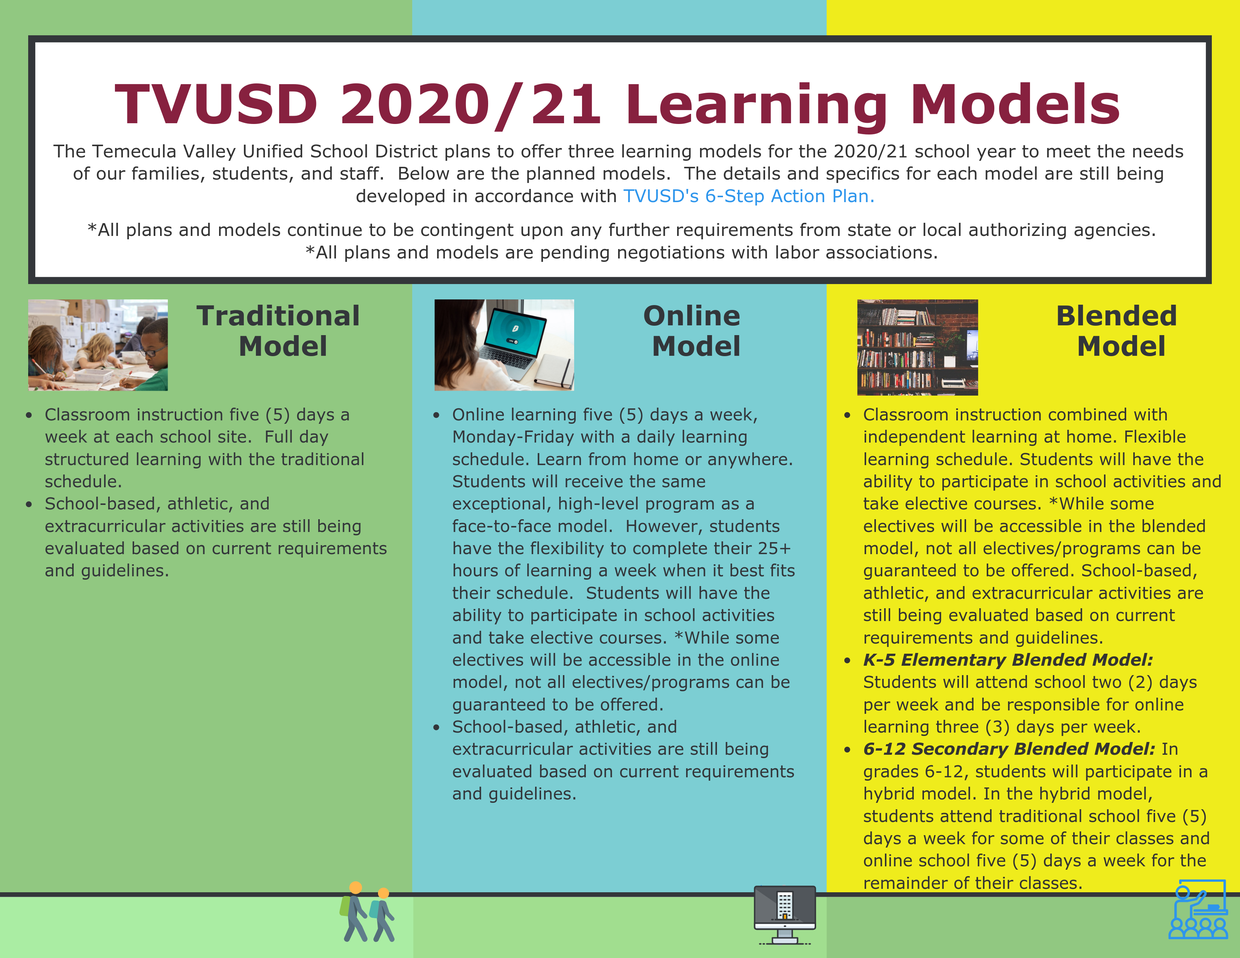 TVUSD 2020/21 Learning Models